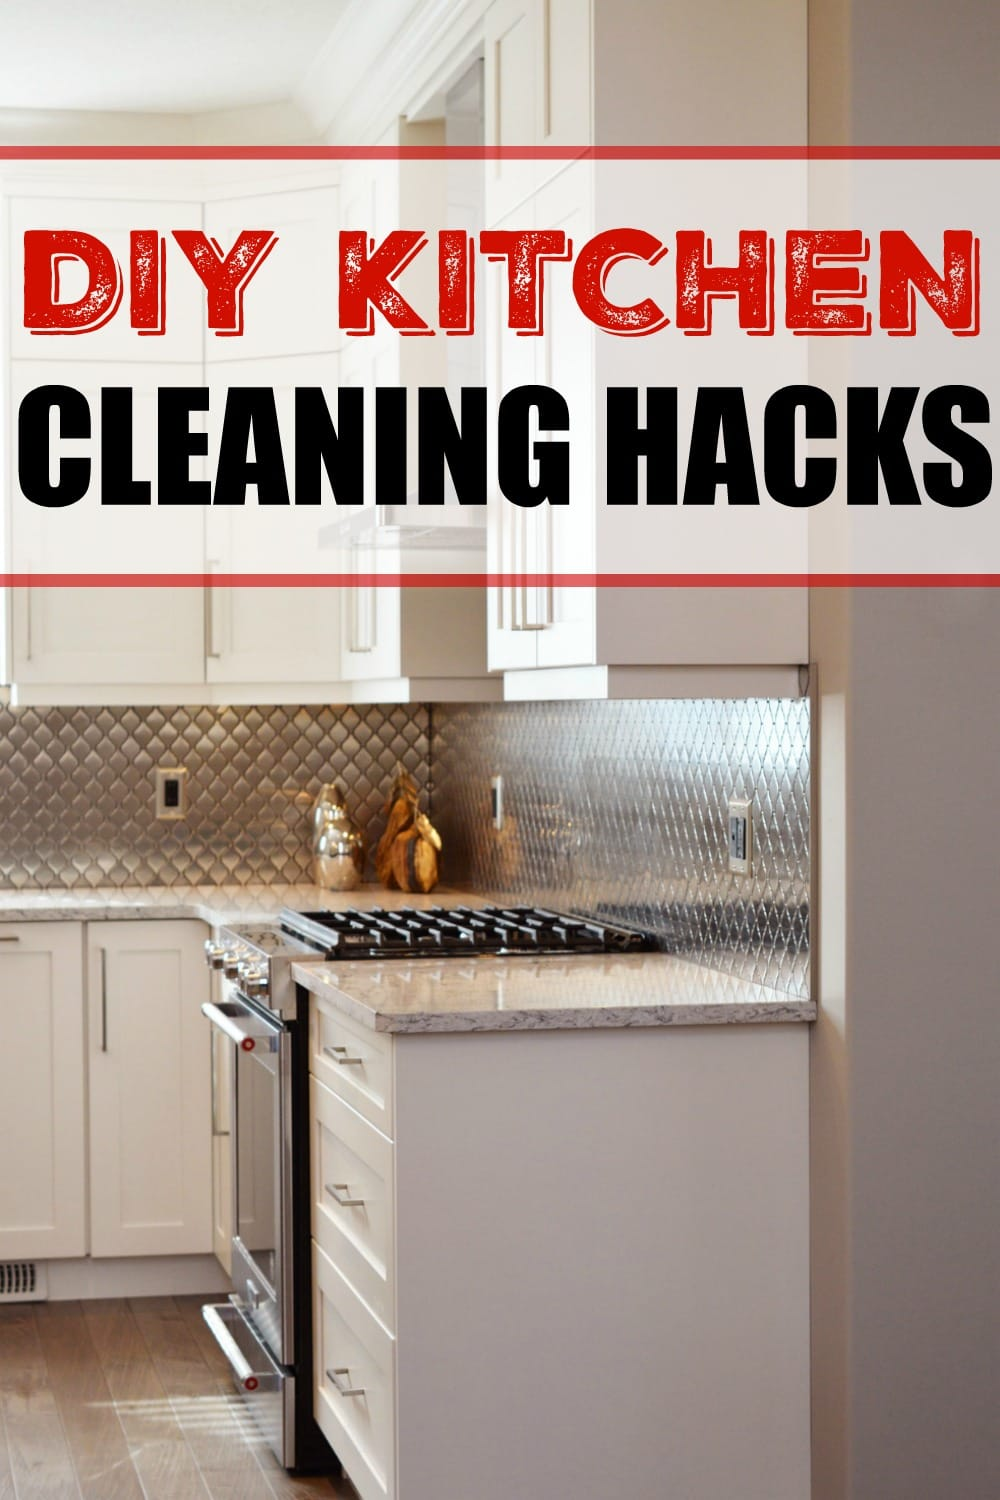 I'm always looking for simple ways to keep my kitchen clean. Cleaning hacks that don't use harmful cleaners are a huge win!!